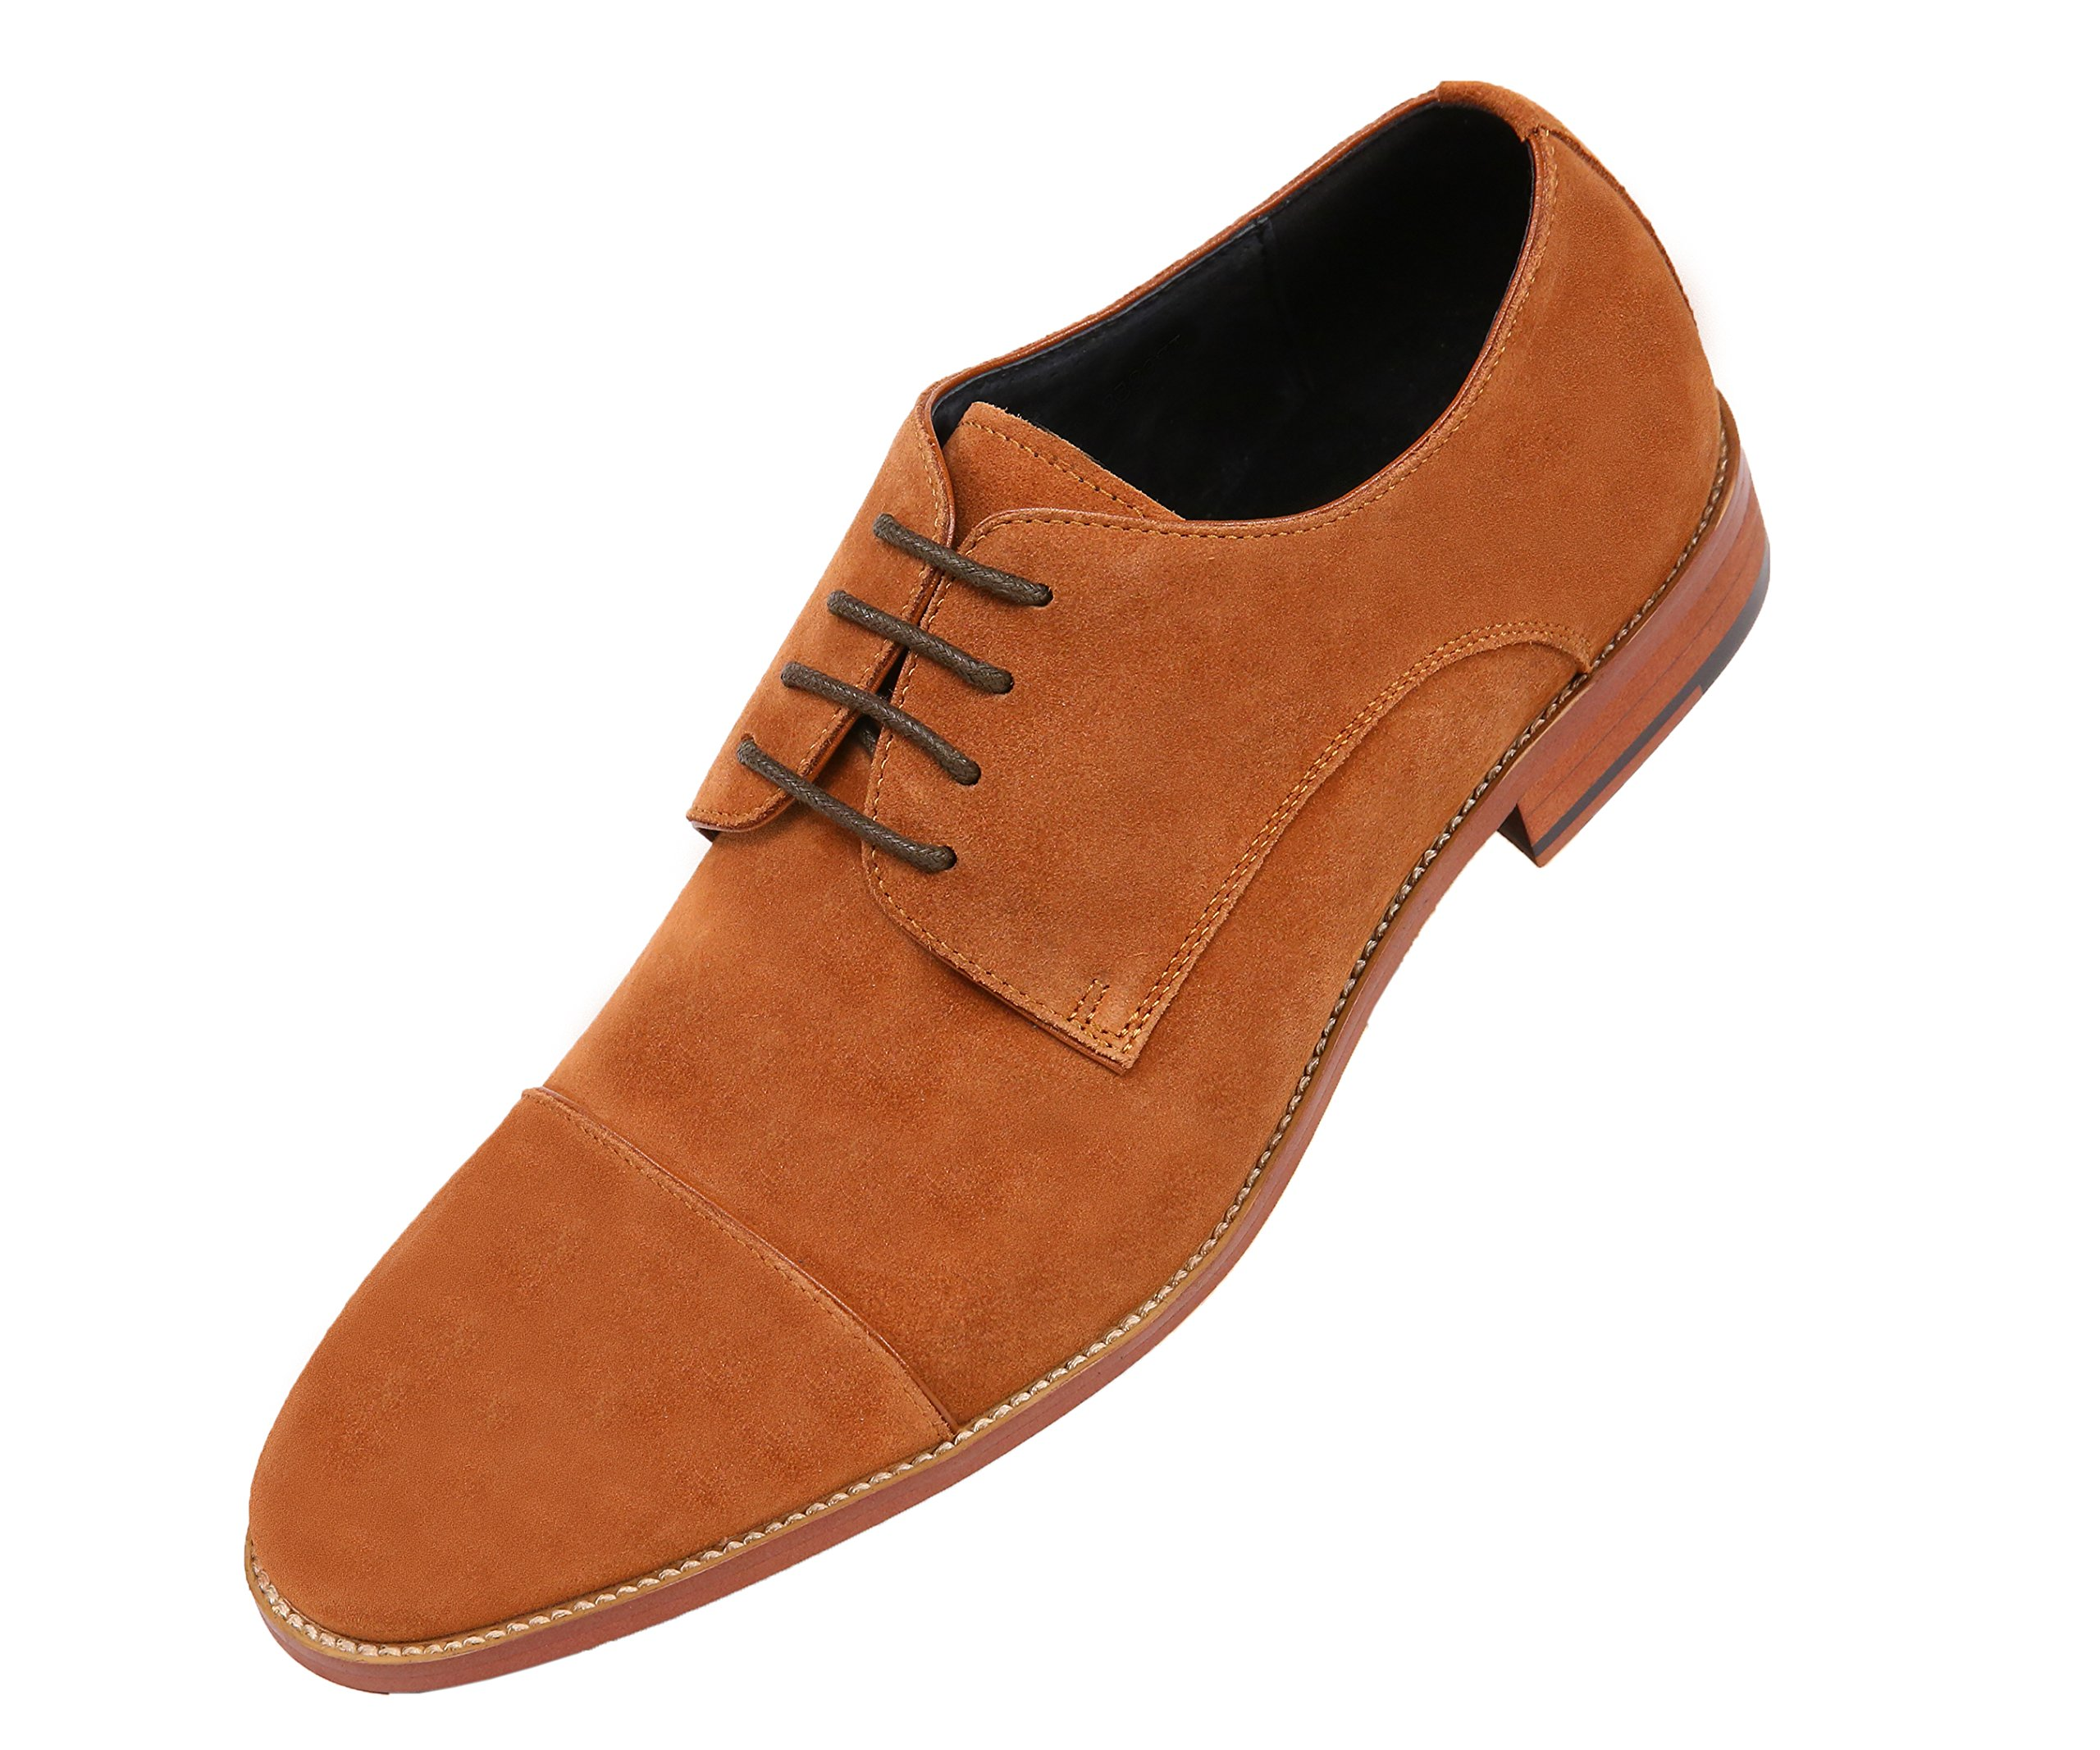 Asher Green Mens Genuine Suede Cap Toe Lace up Oxford Dress Shoe with Wood-Like Sole, Style AG3889